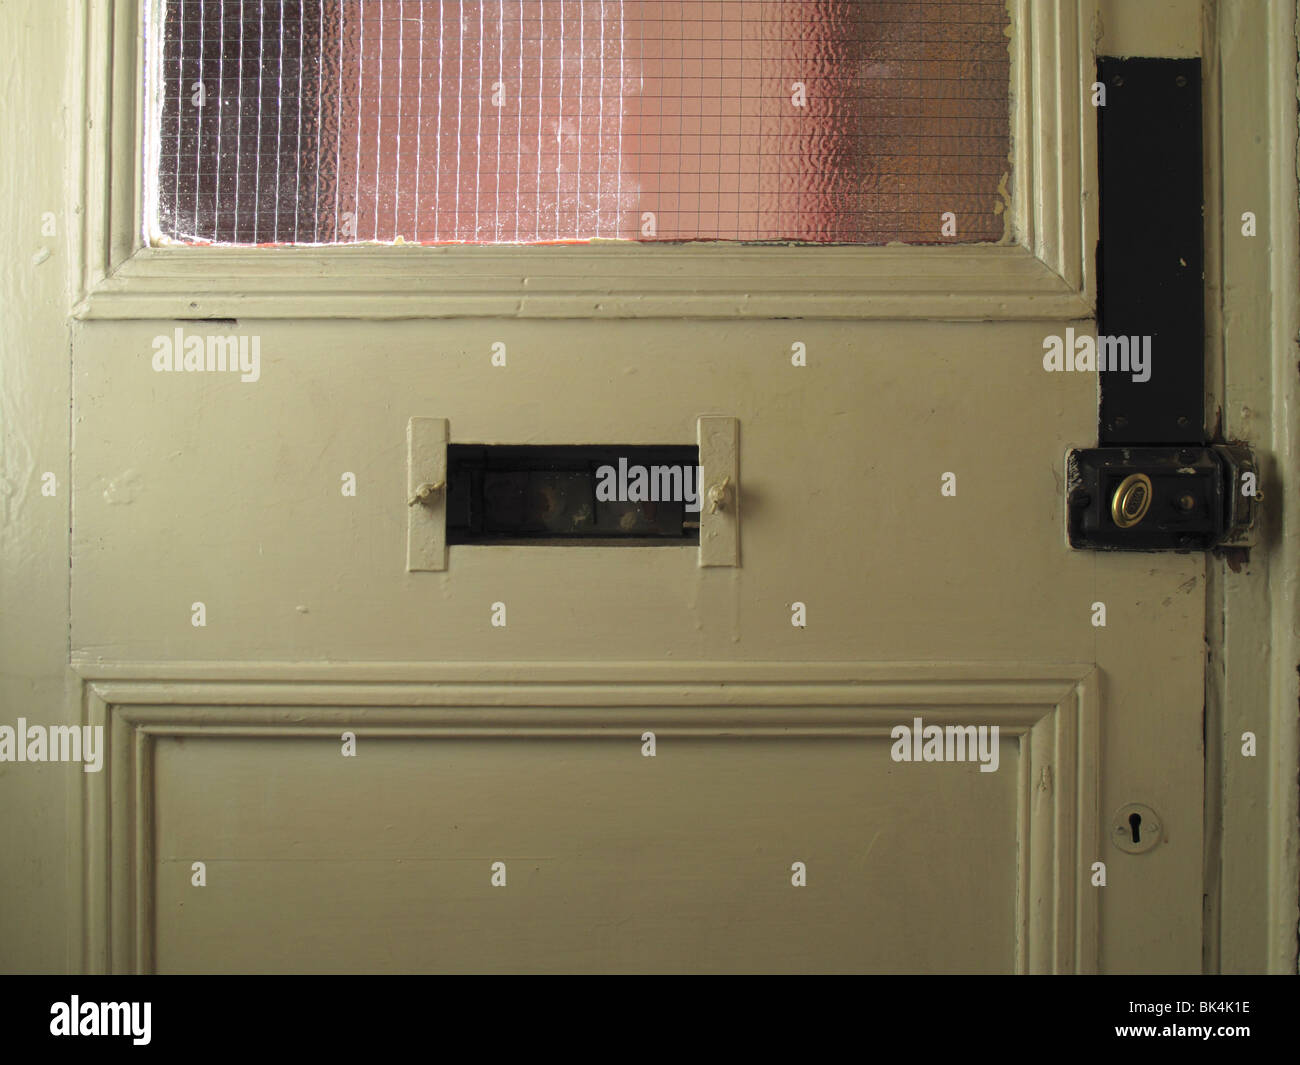 Letterbox Door Inside Stock Photos Letterbox Door Inside Stock